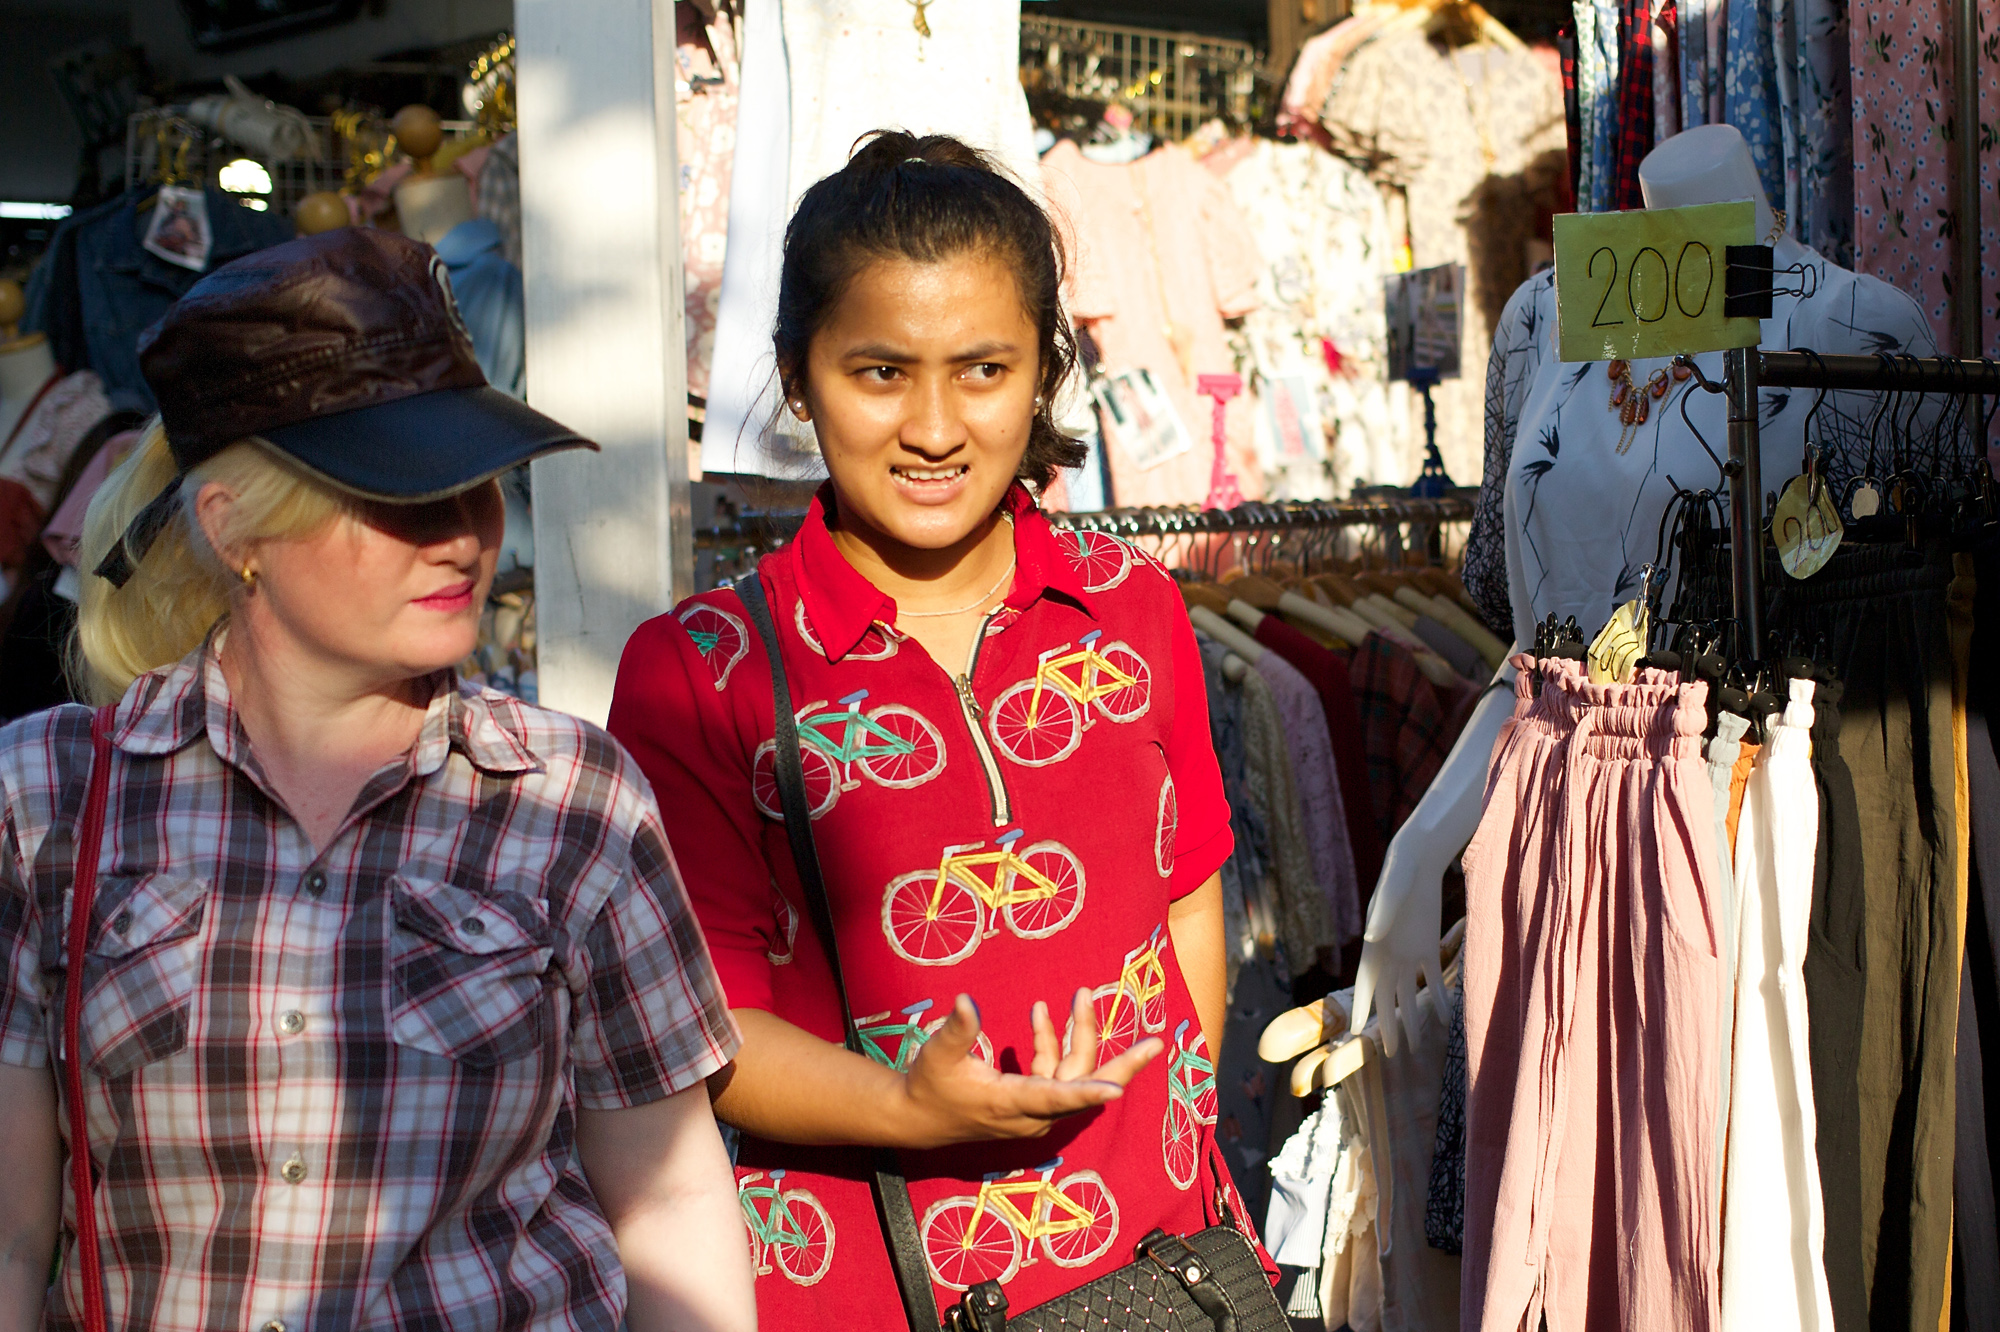 girl in red shirt with bicycle pattern